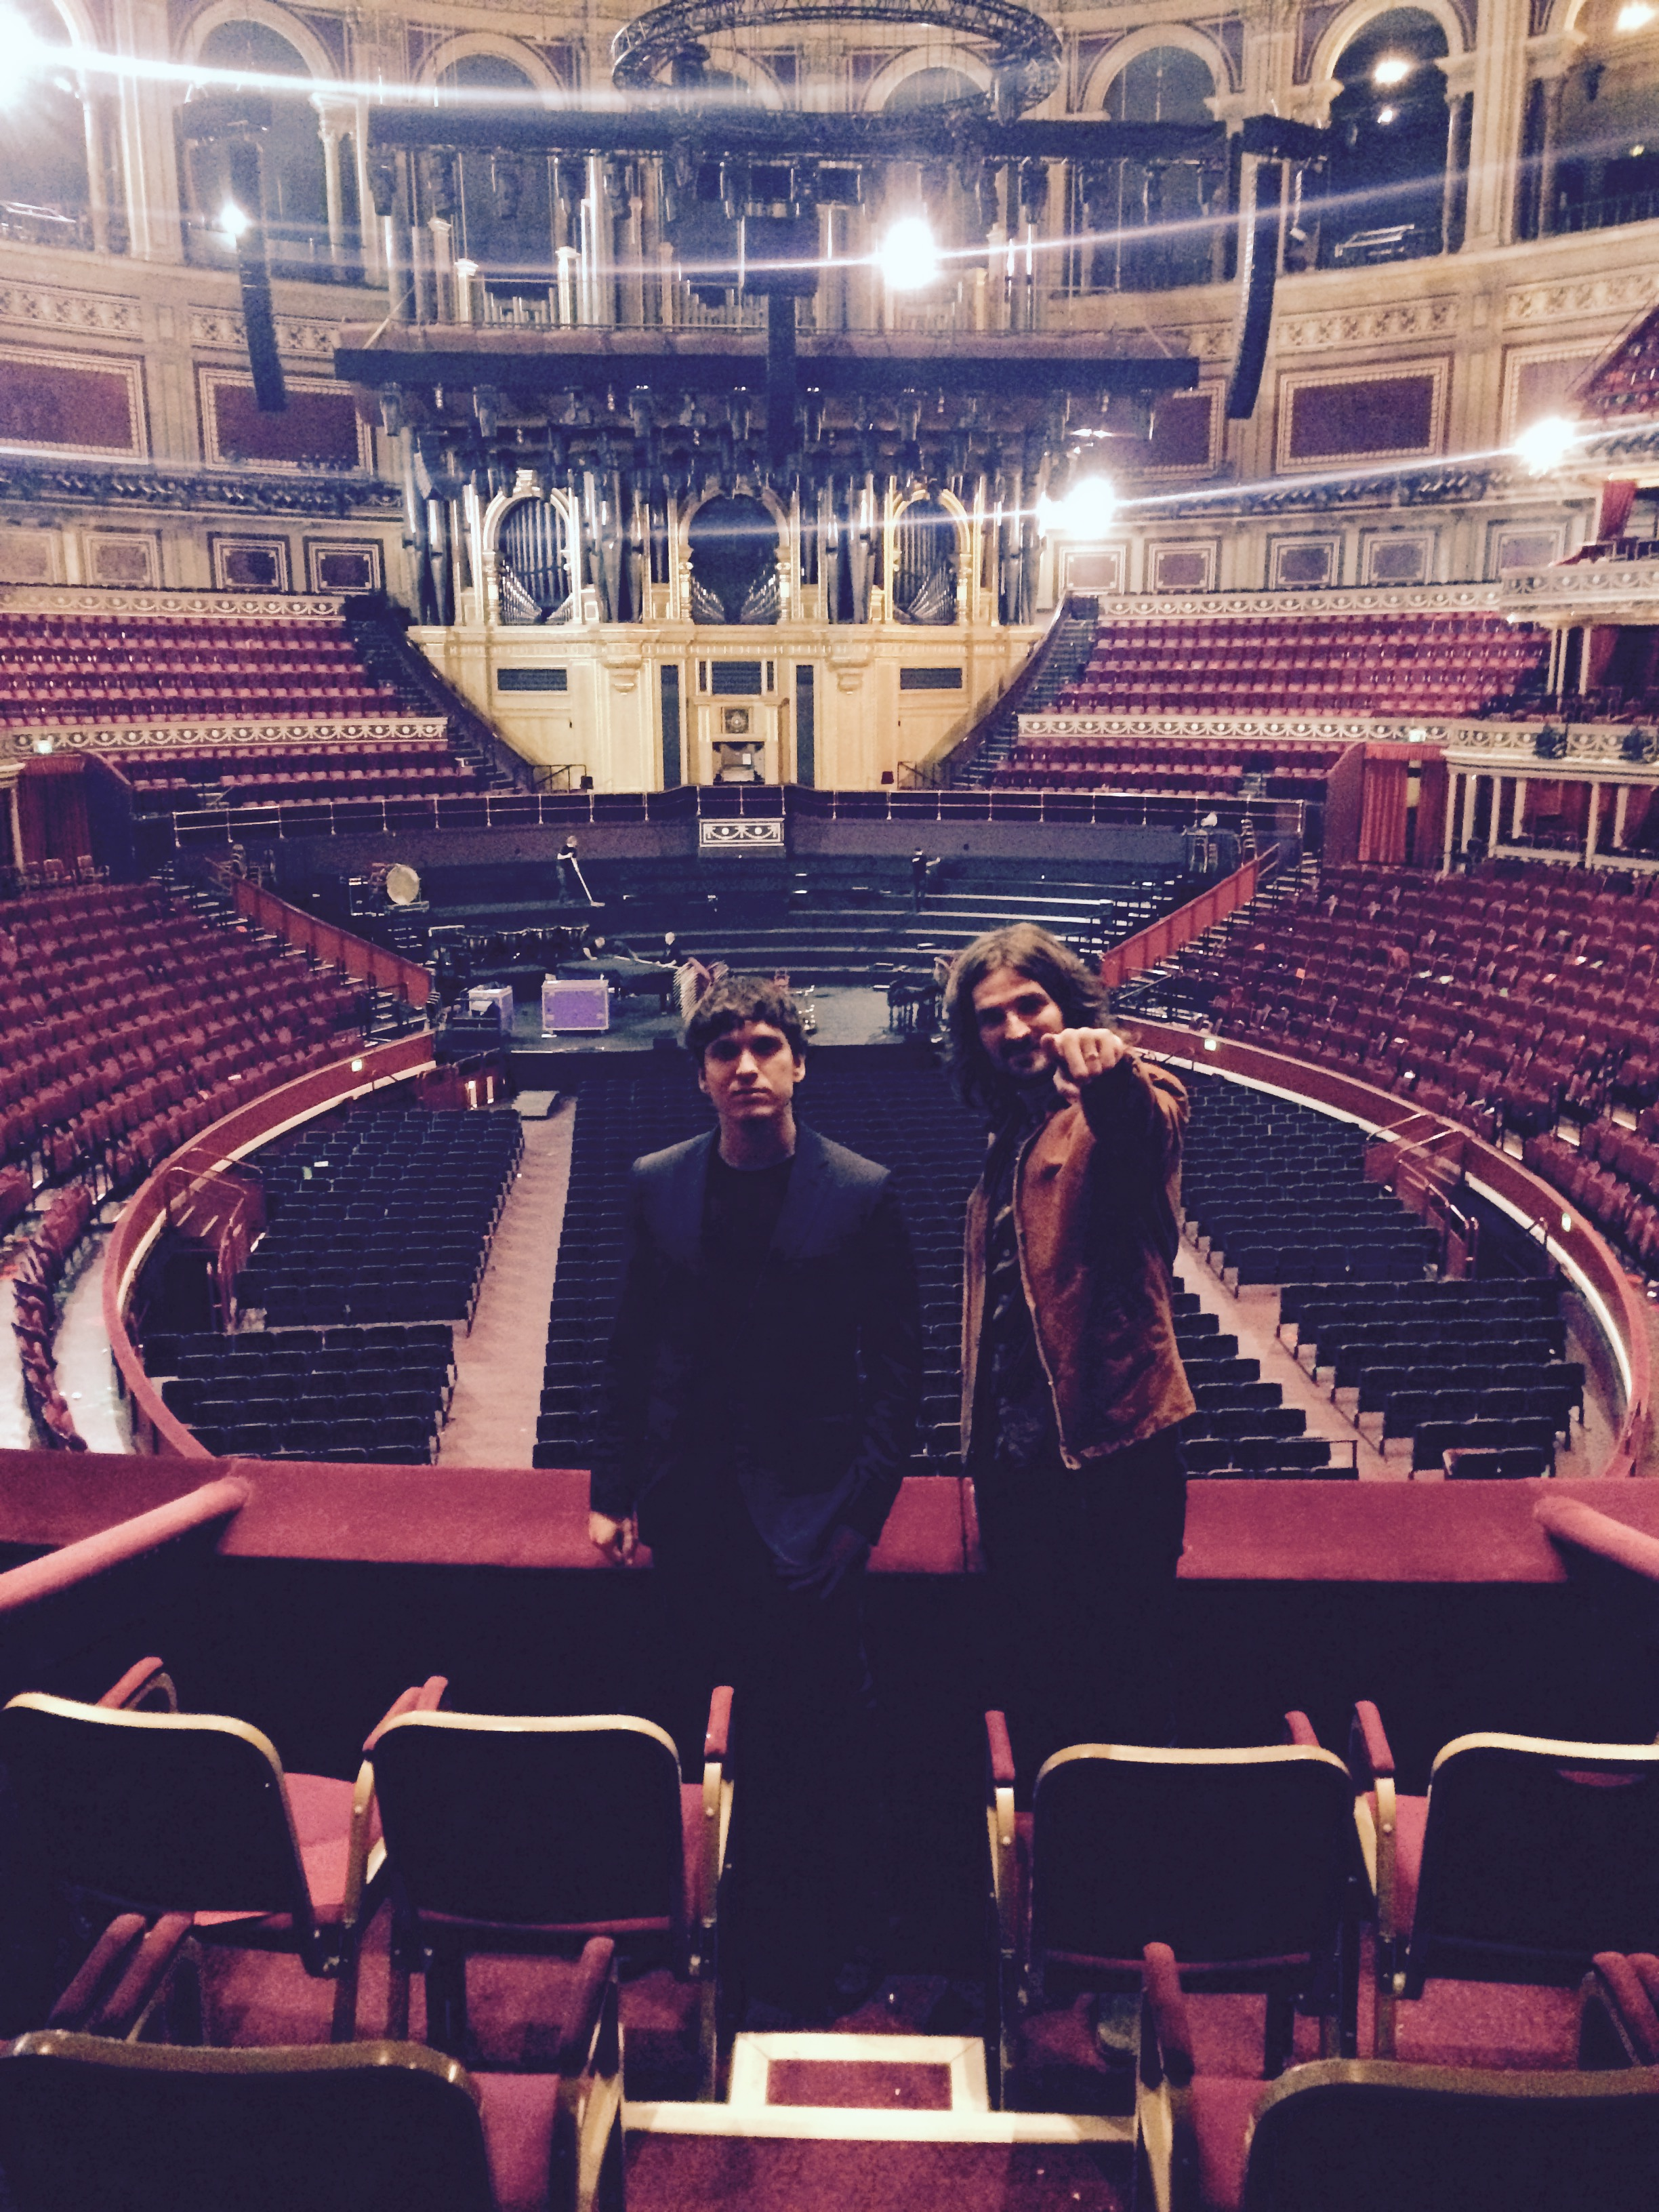 Pre-gig tour of the Royal Albert Hall